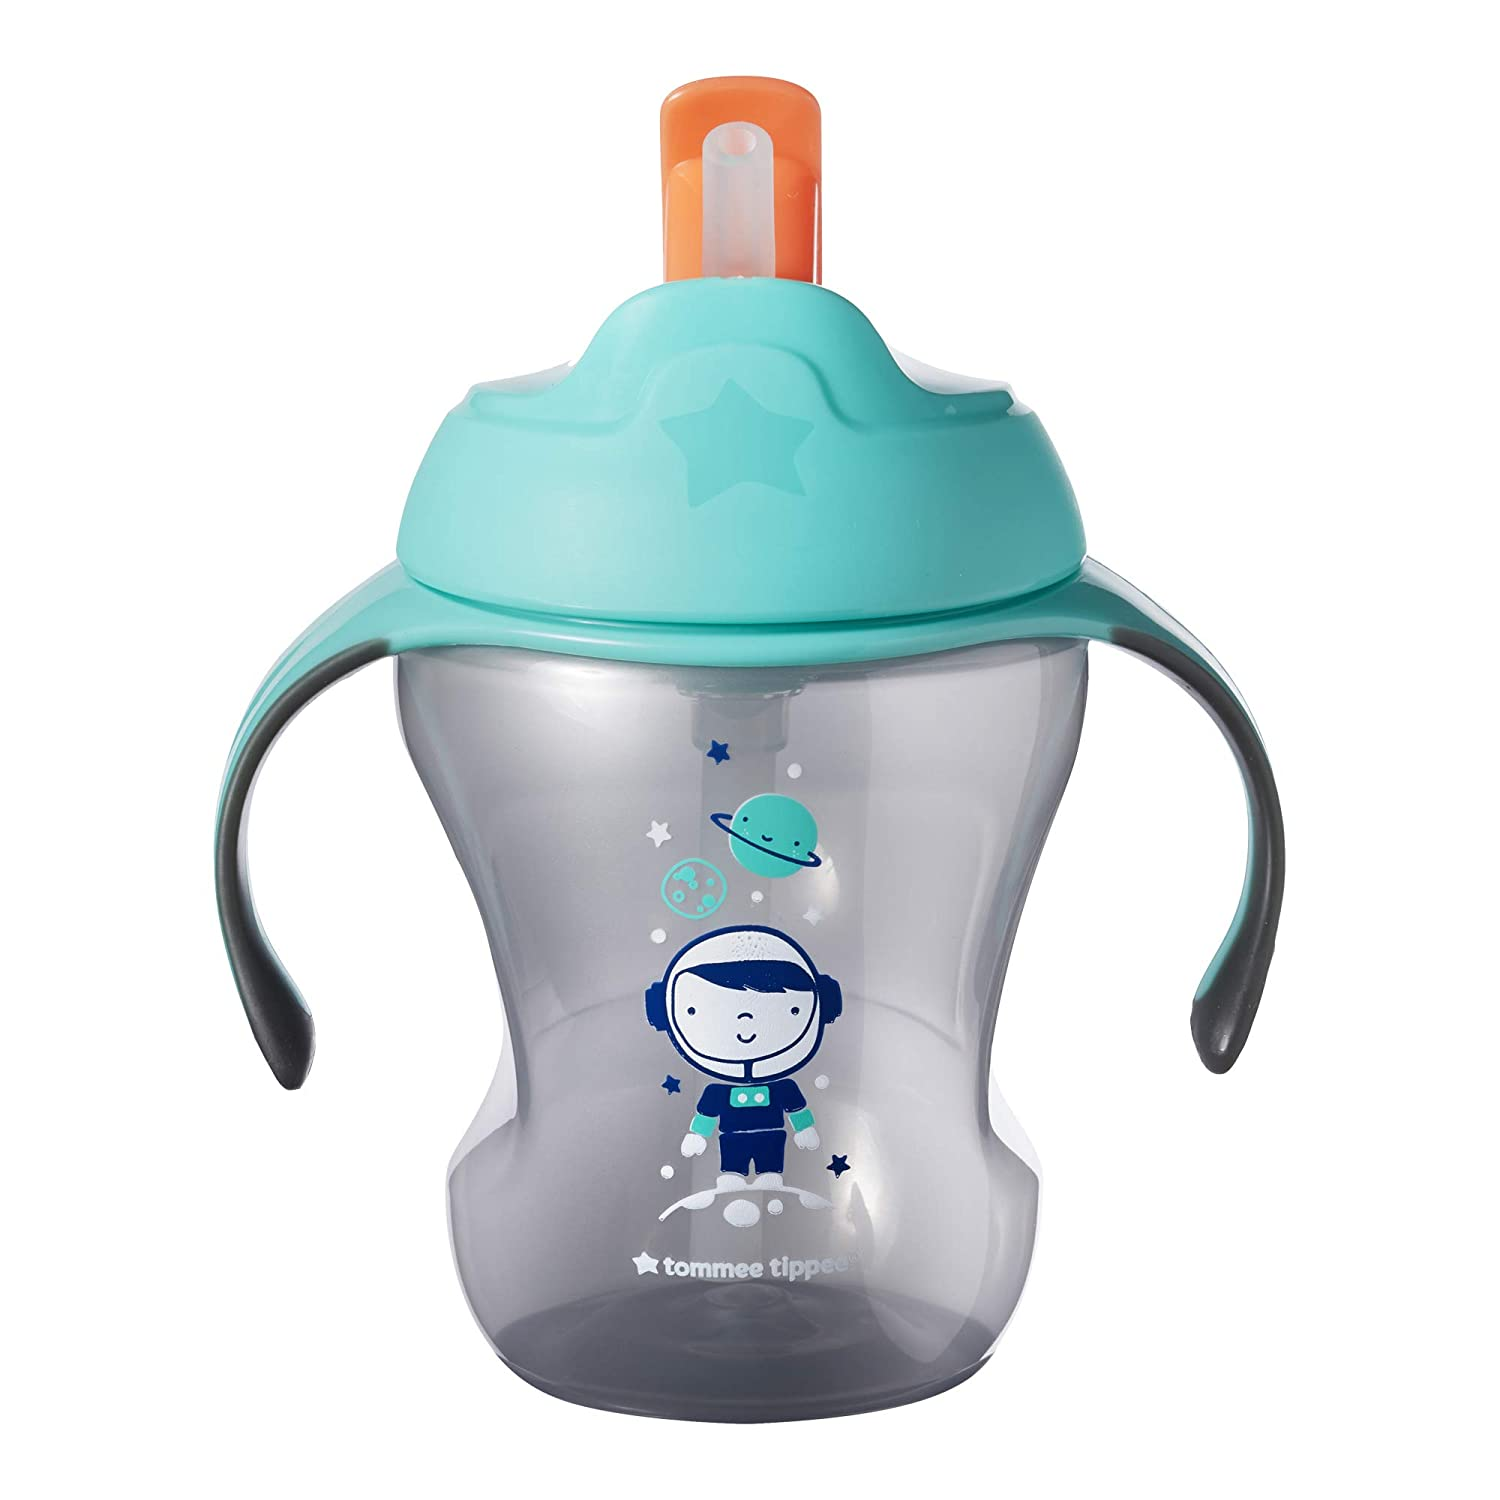 TOMMEE TIPPEE FIRST SPORTS  BOTTLE Assorted Colors